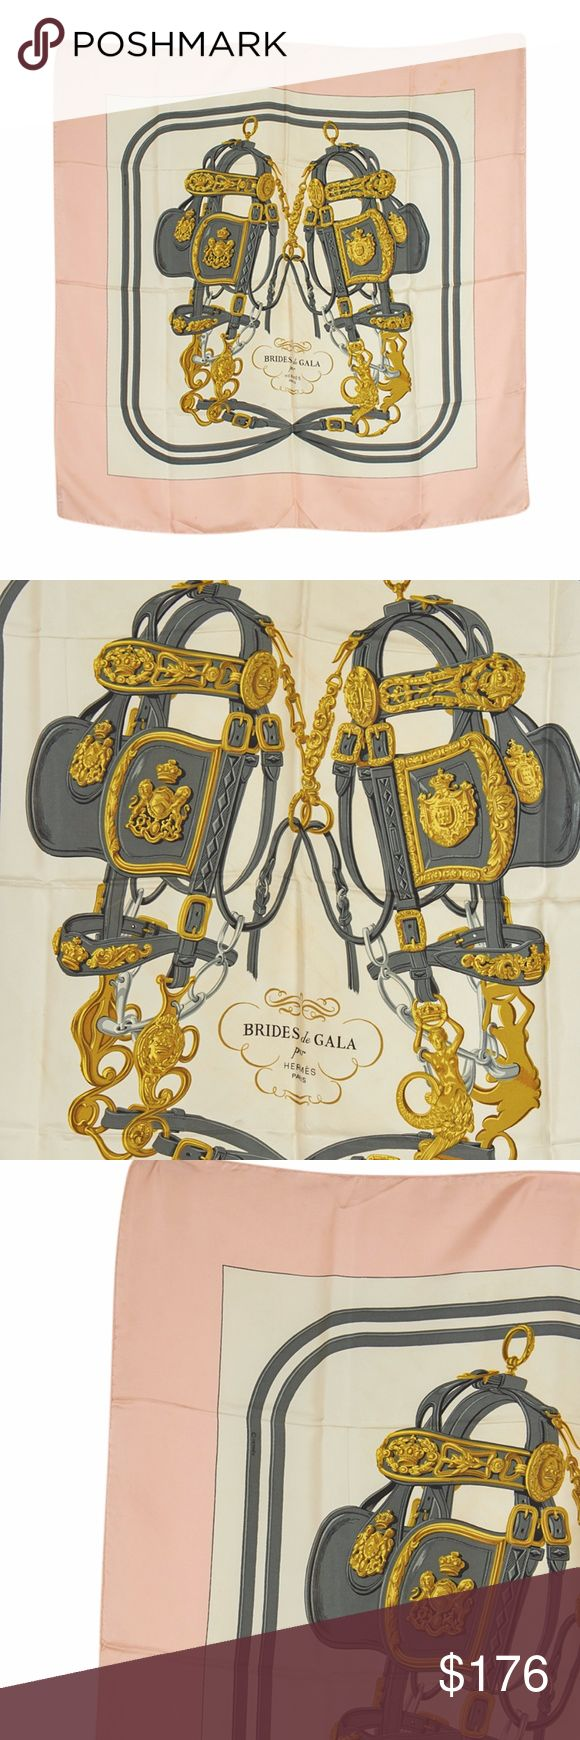 Hermes Bride de Gala Silk Scarf (137495) This Hermes Bride de Gala scarf features:  •Shows staining and wear throughout •Overall Condition: Pre-owned •Exterior Condition: Gently Used •Type: Scarf •Material: Silk •Origin: France •Color: Pink/Gold/Grey •Odor: Perfume •Weight: 0.135 lbs •Production Code: N/A Hermes Accessories Scarves & Wraps